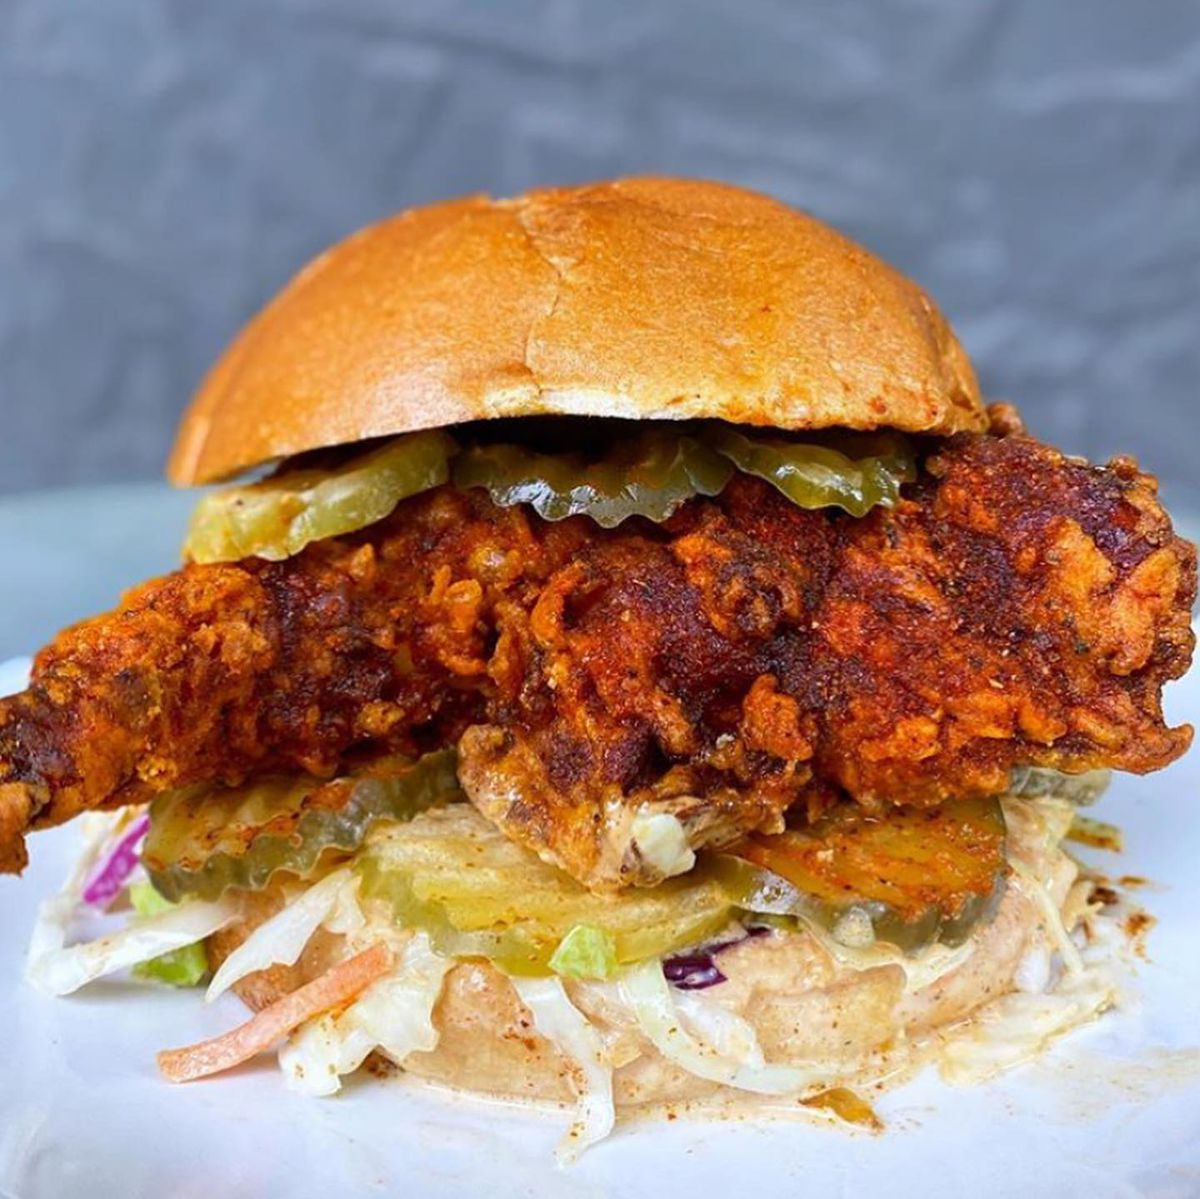 A seriously spiced, crispy fried chicken breast dominates a buttery bun with pickle rounds on the top and bottom with a layer of slaw on the bottom. Juices are dripping off the sandwich and pooling on the plate.